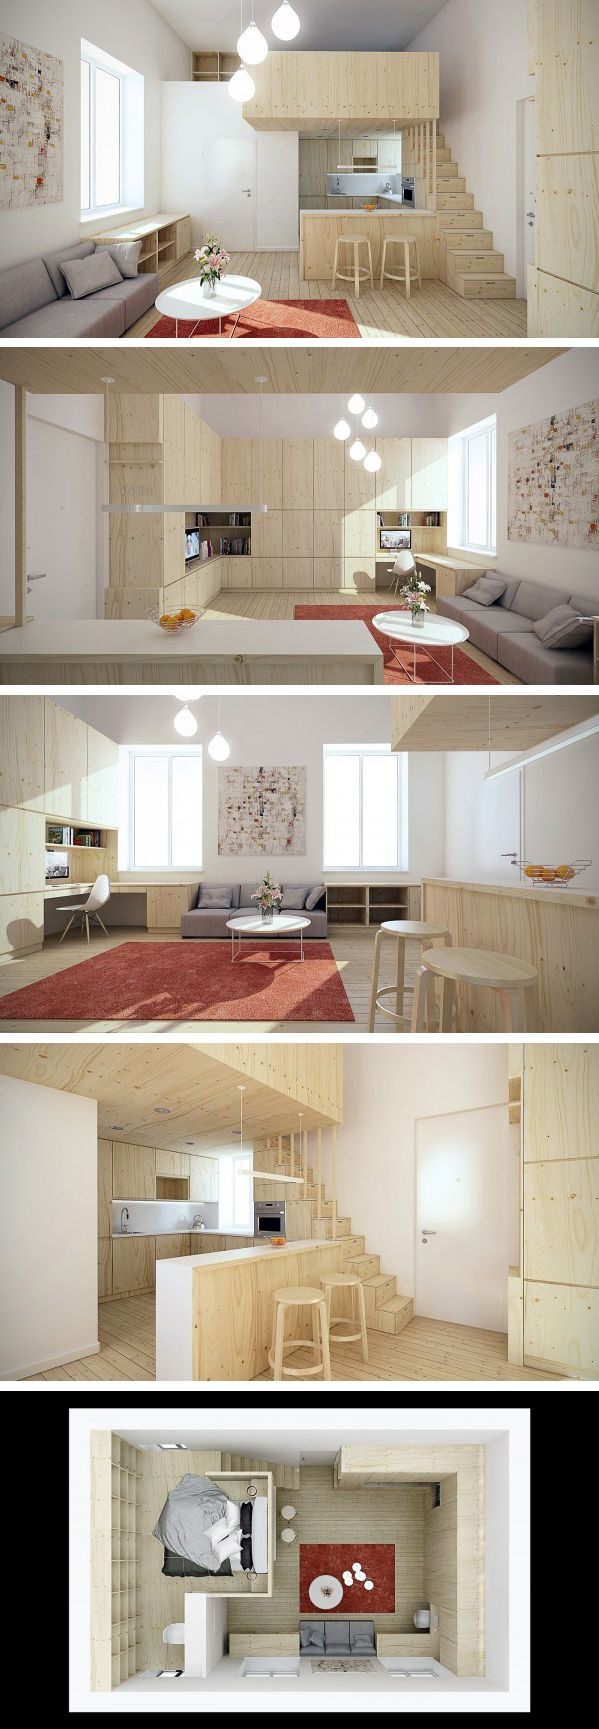 Loft de 25 metros quadrados https://za.pinterest.com/search/pins/?rs=ac&len=2&q=micro+loft+design&0=micro%7Cautocomplete%7C3&1=loft%7Cautocomplete%… | Casiñas …